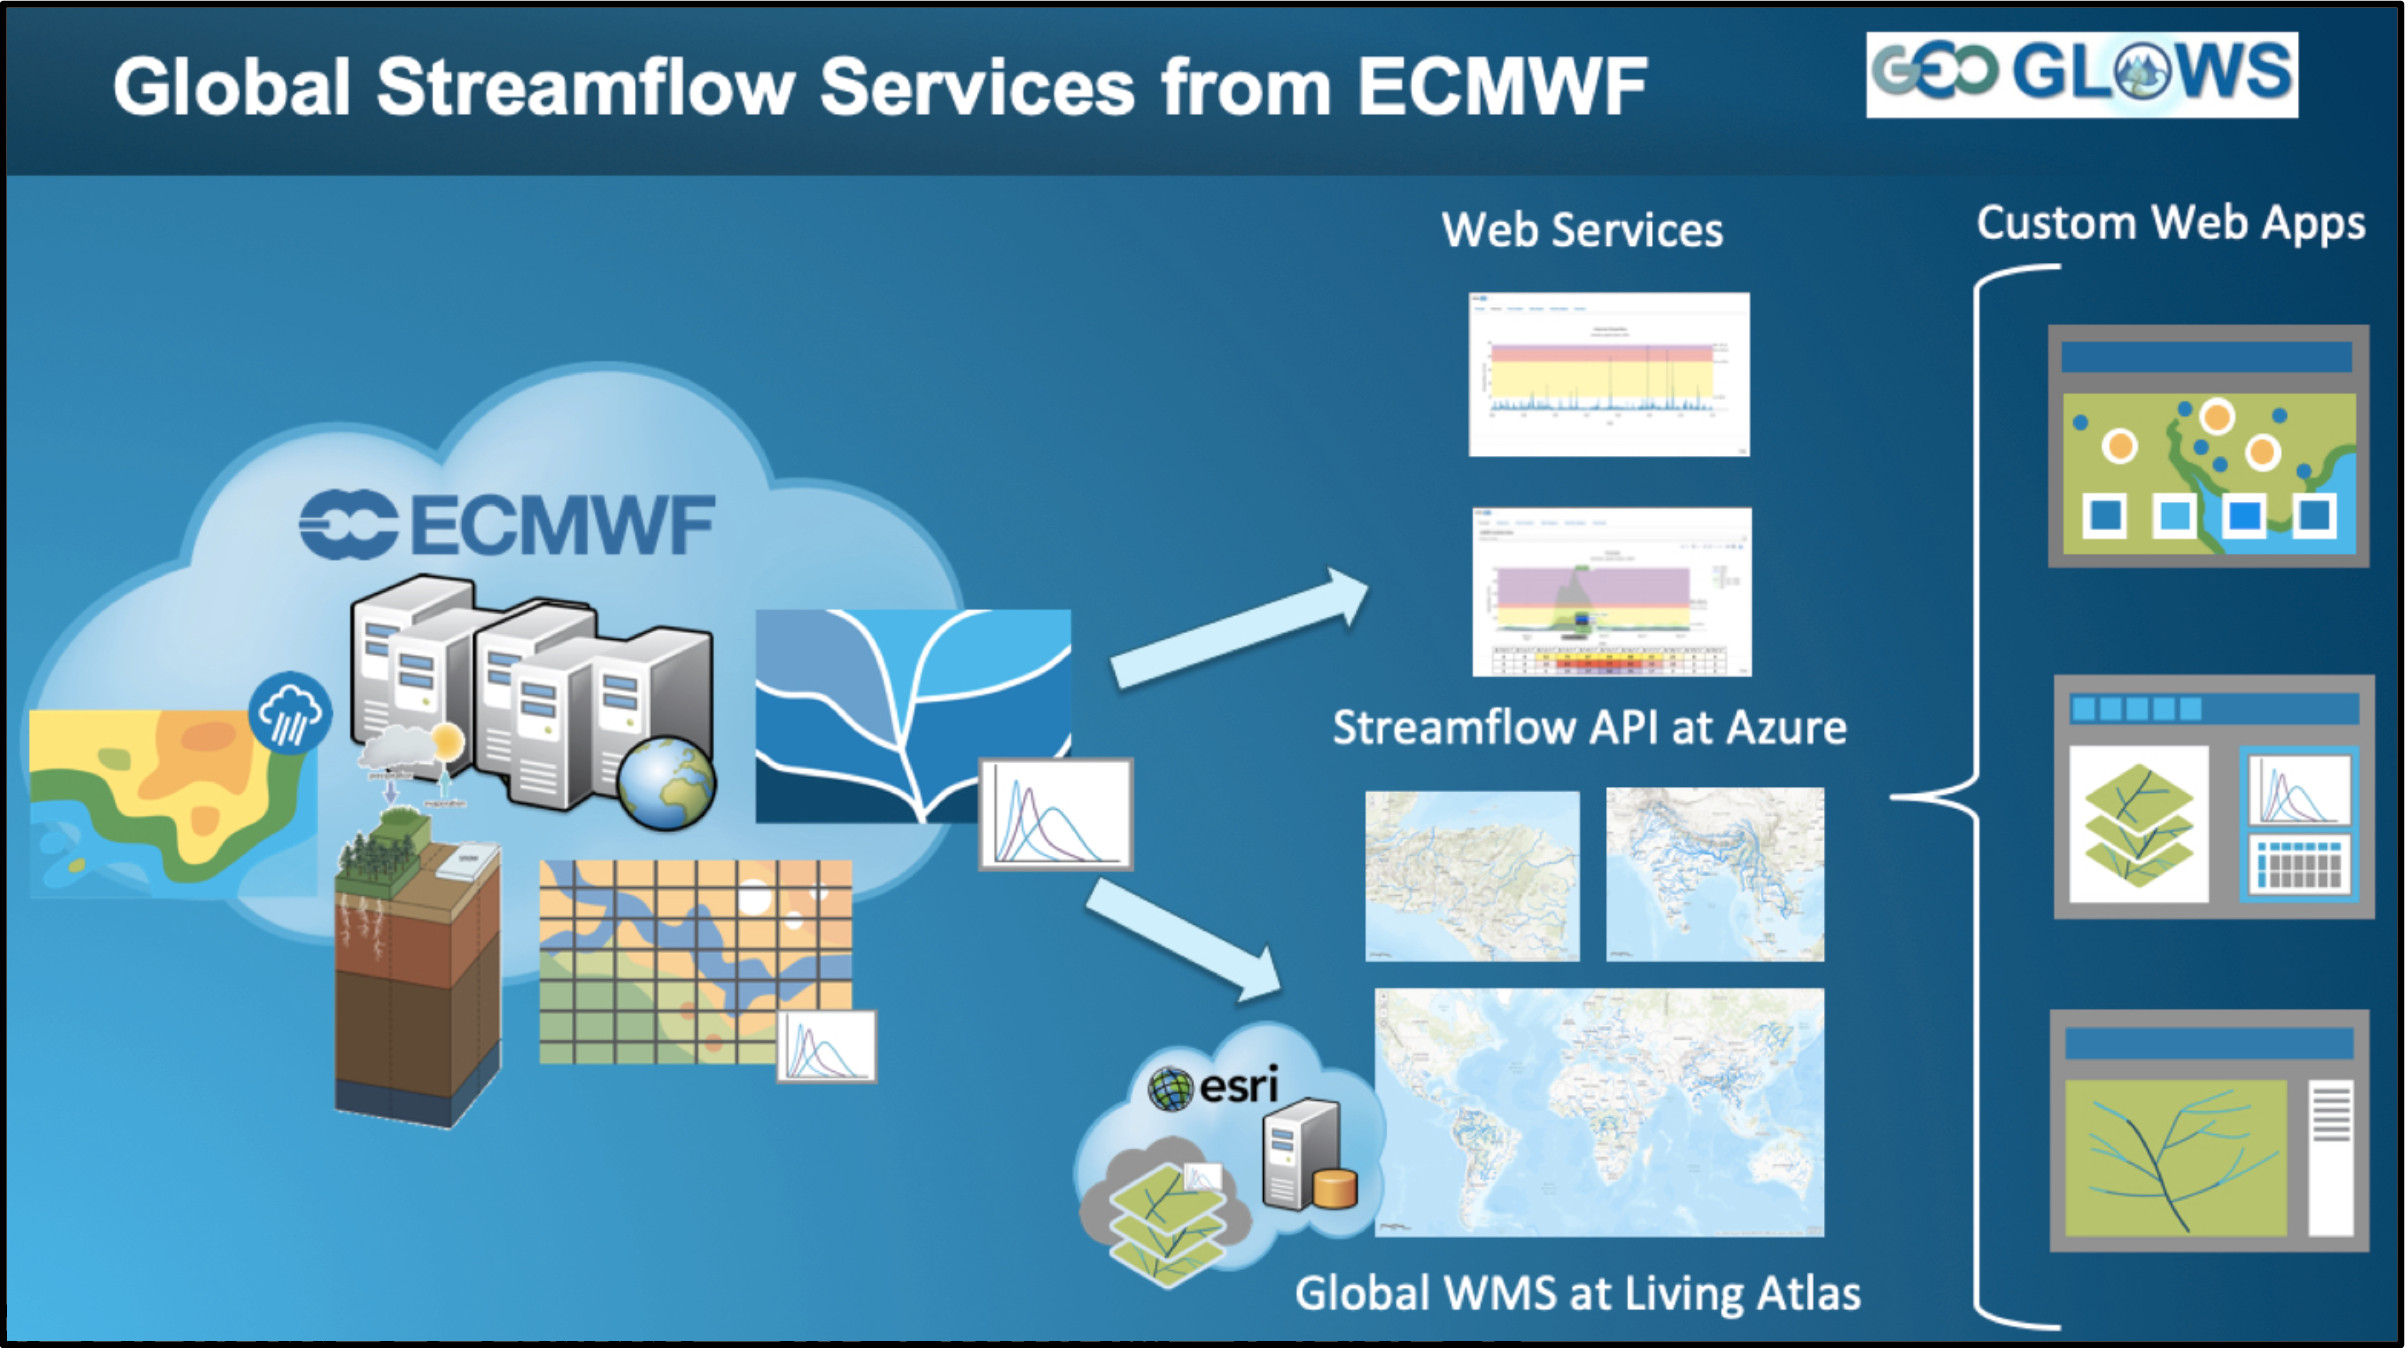 GEOGloWS ECMWF Streamflow Services